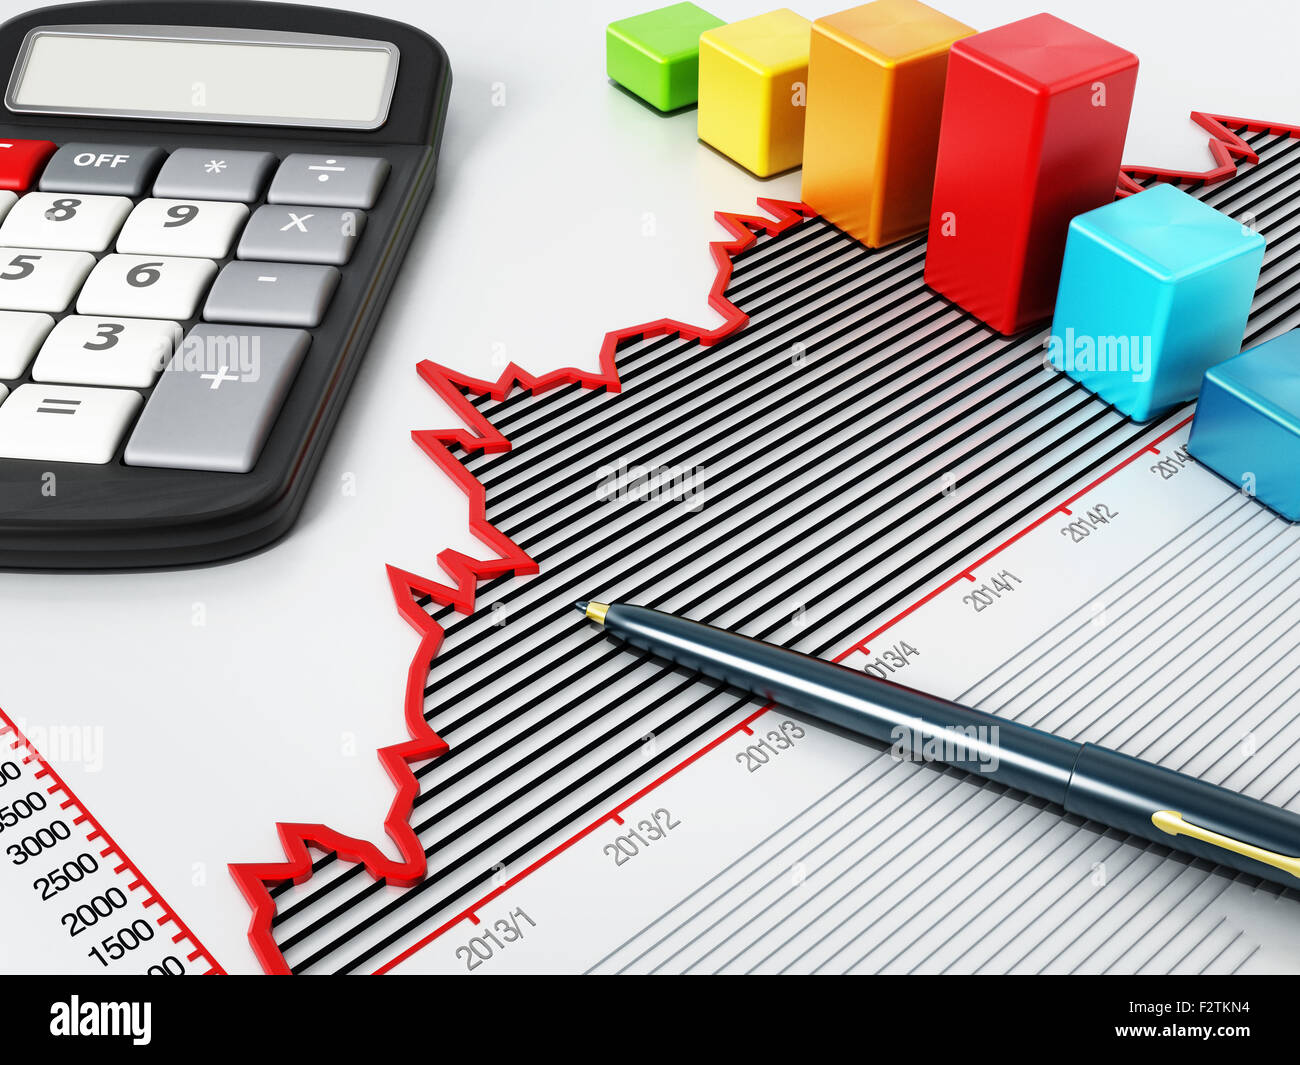 Rising sale graphic with a calculator, pen and blocks. - Stock Image